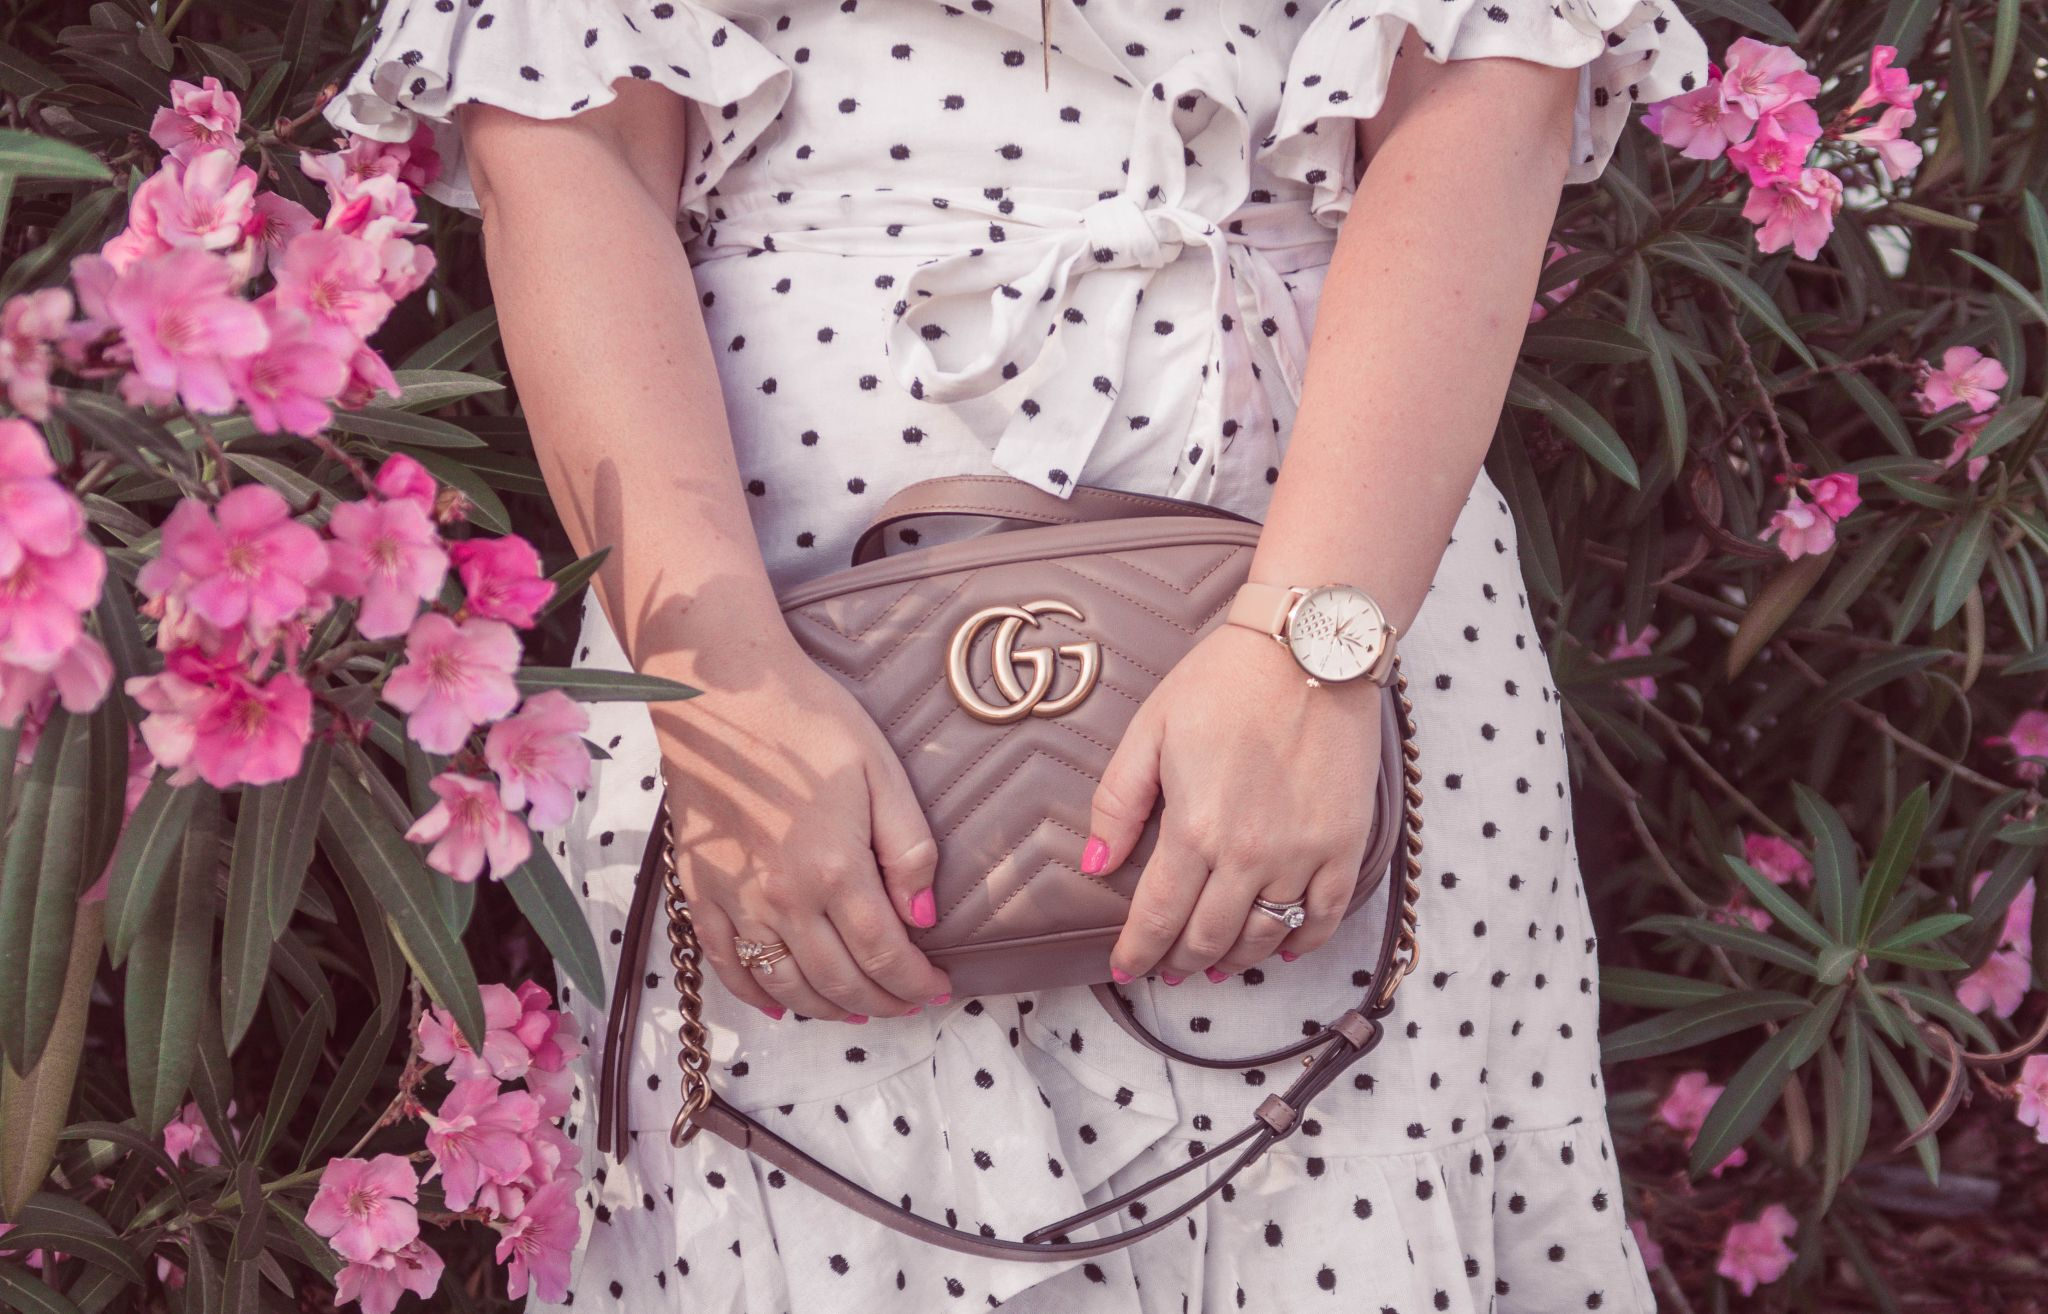 Fashion Blogger Elizabeth Hugen of Lizzie in Lace shares her girly handbag collection including this gucci marmont